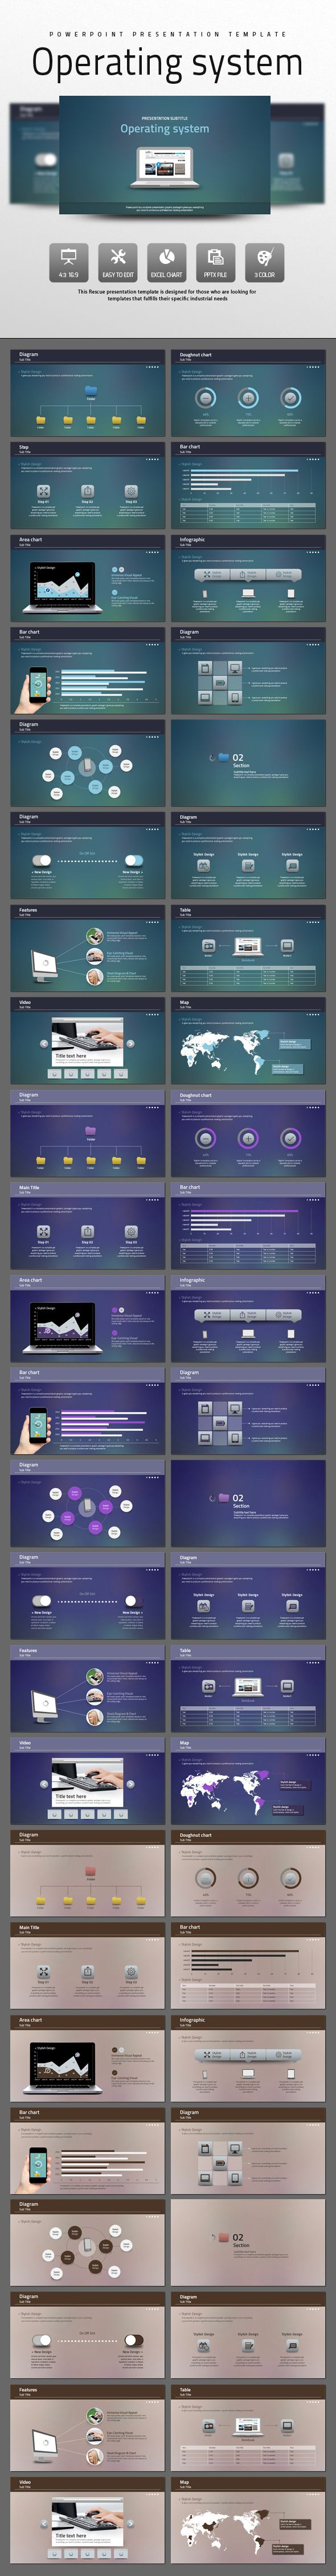 Operating system (PowerPoint Templates)